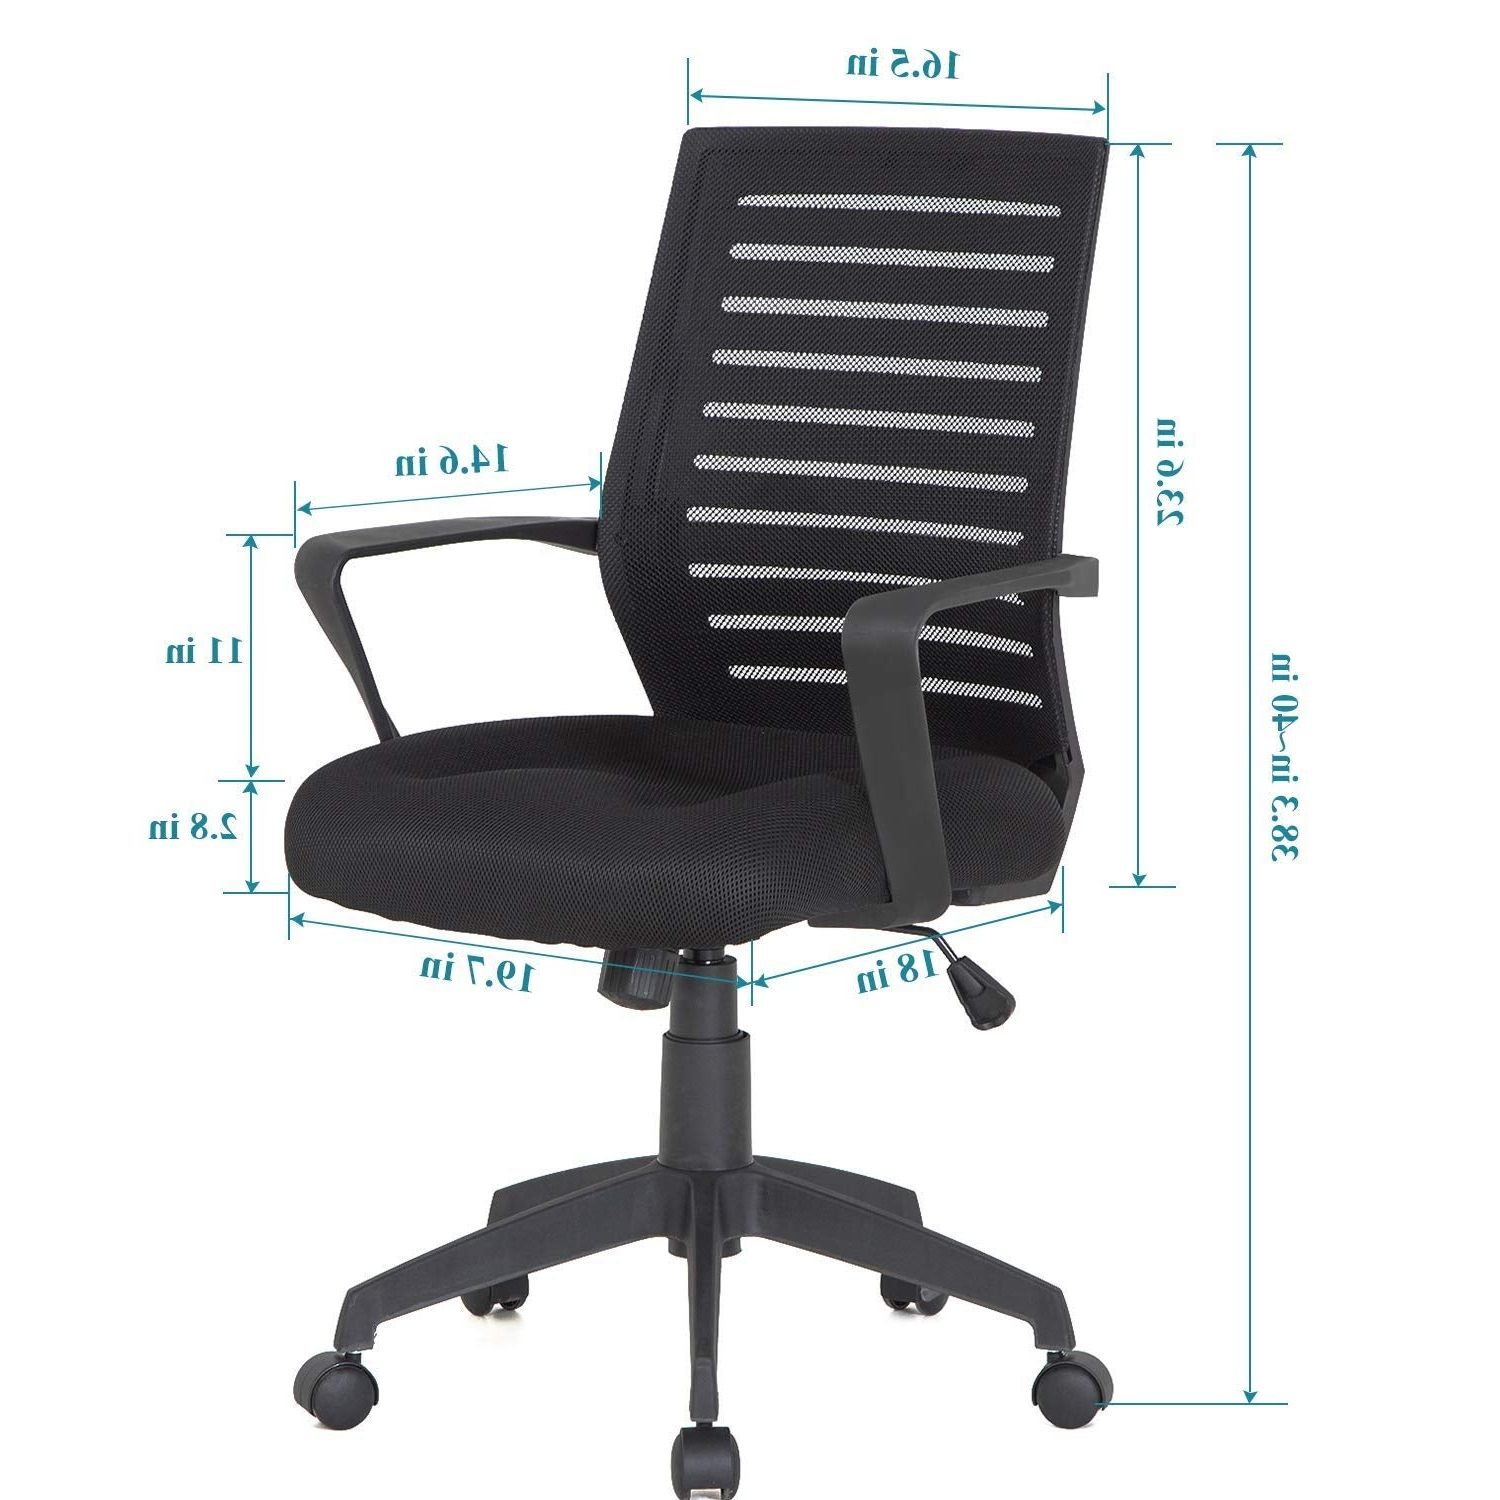 Office Chairs S5d8 Office Chair Mesh Surface Cushion Adjustable Swivel Mesh Desk Chairs